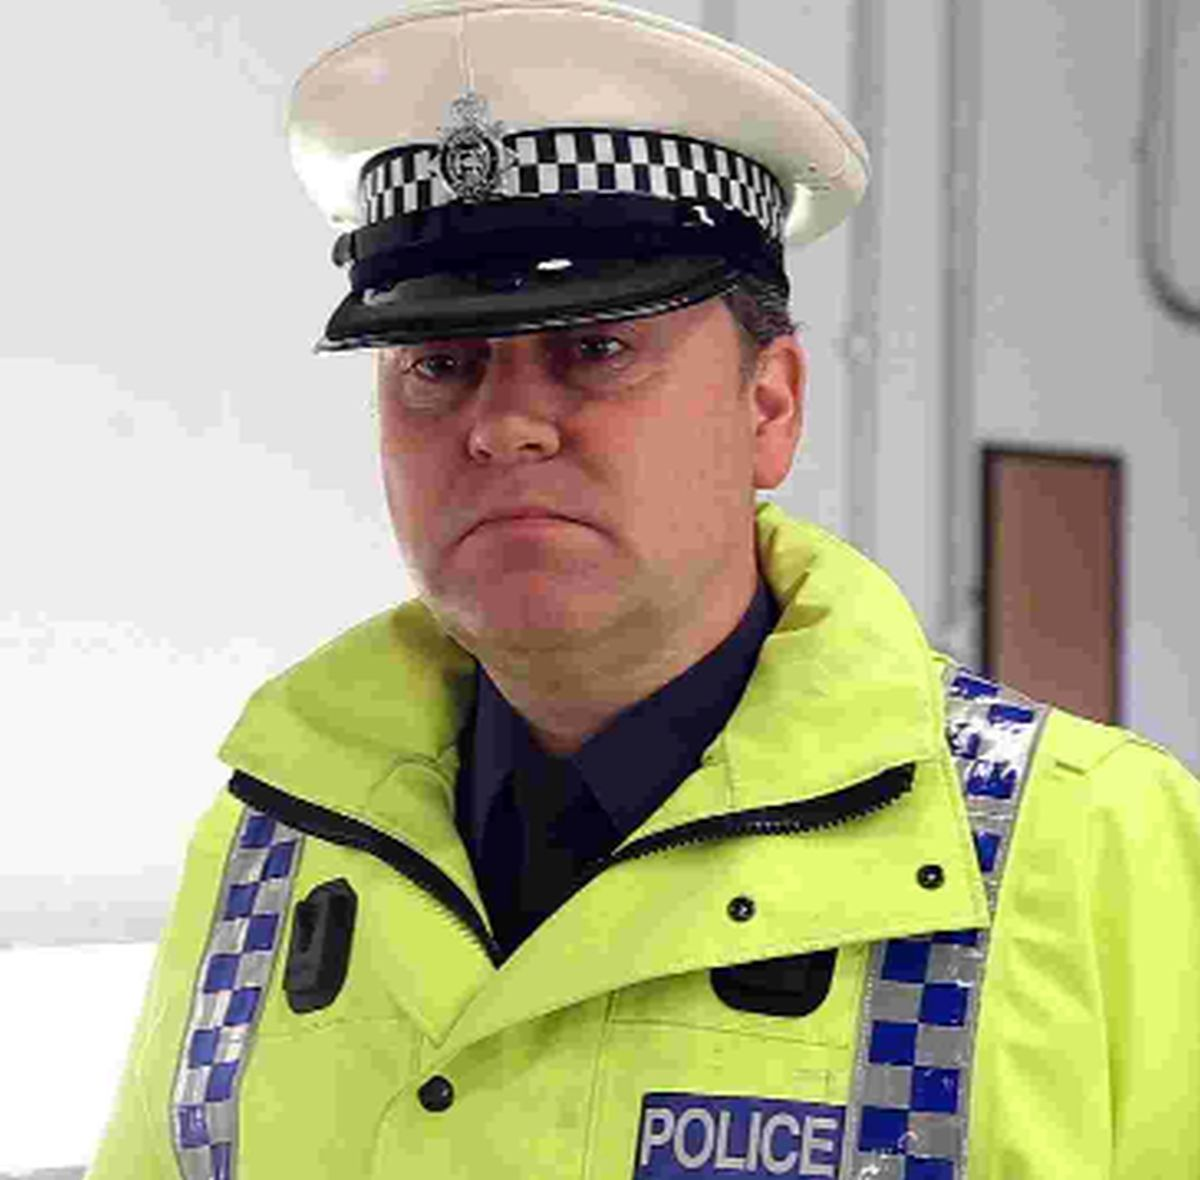 Inspector Matt Butler from Dorset Police's traffic unit